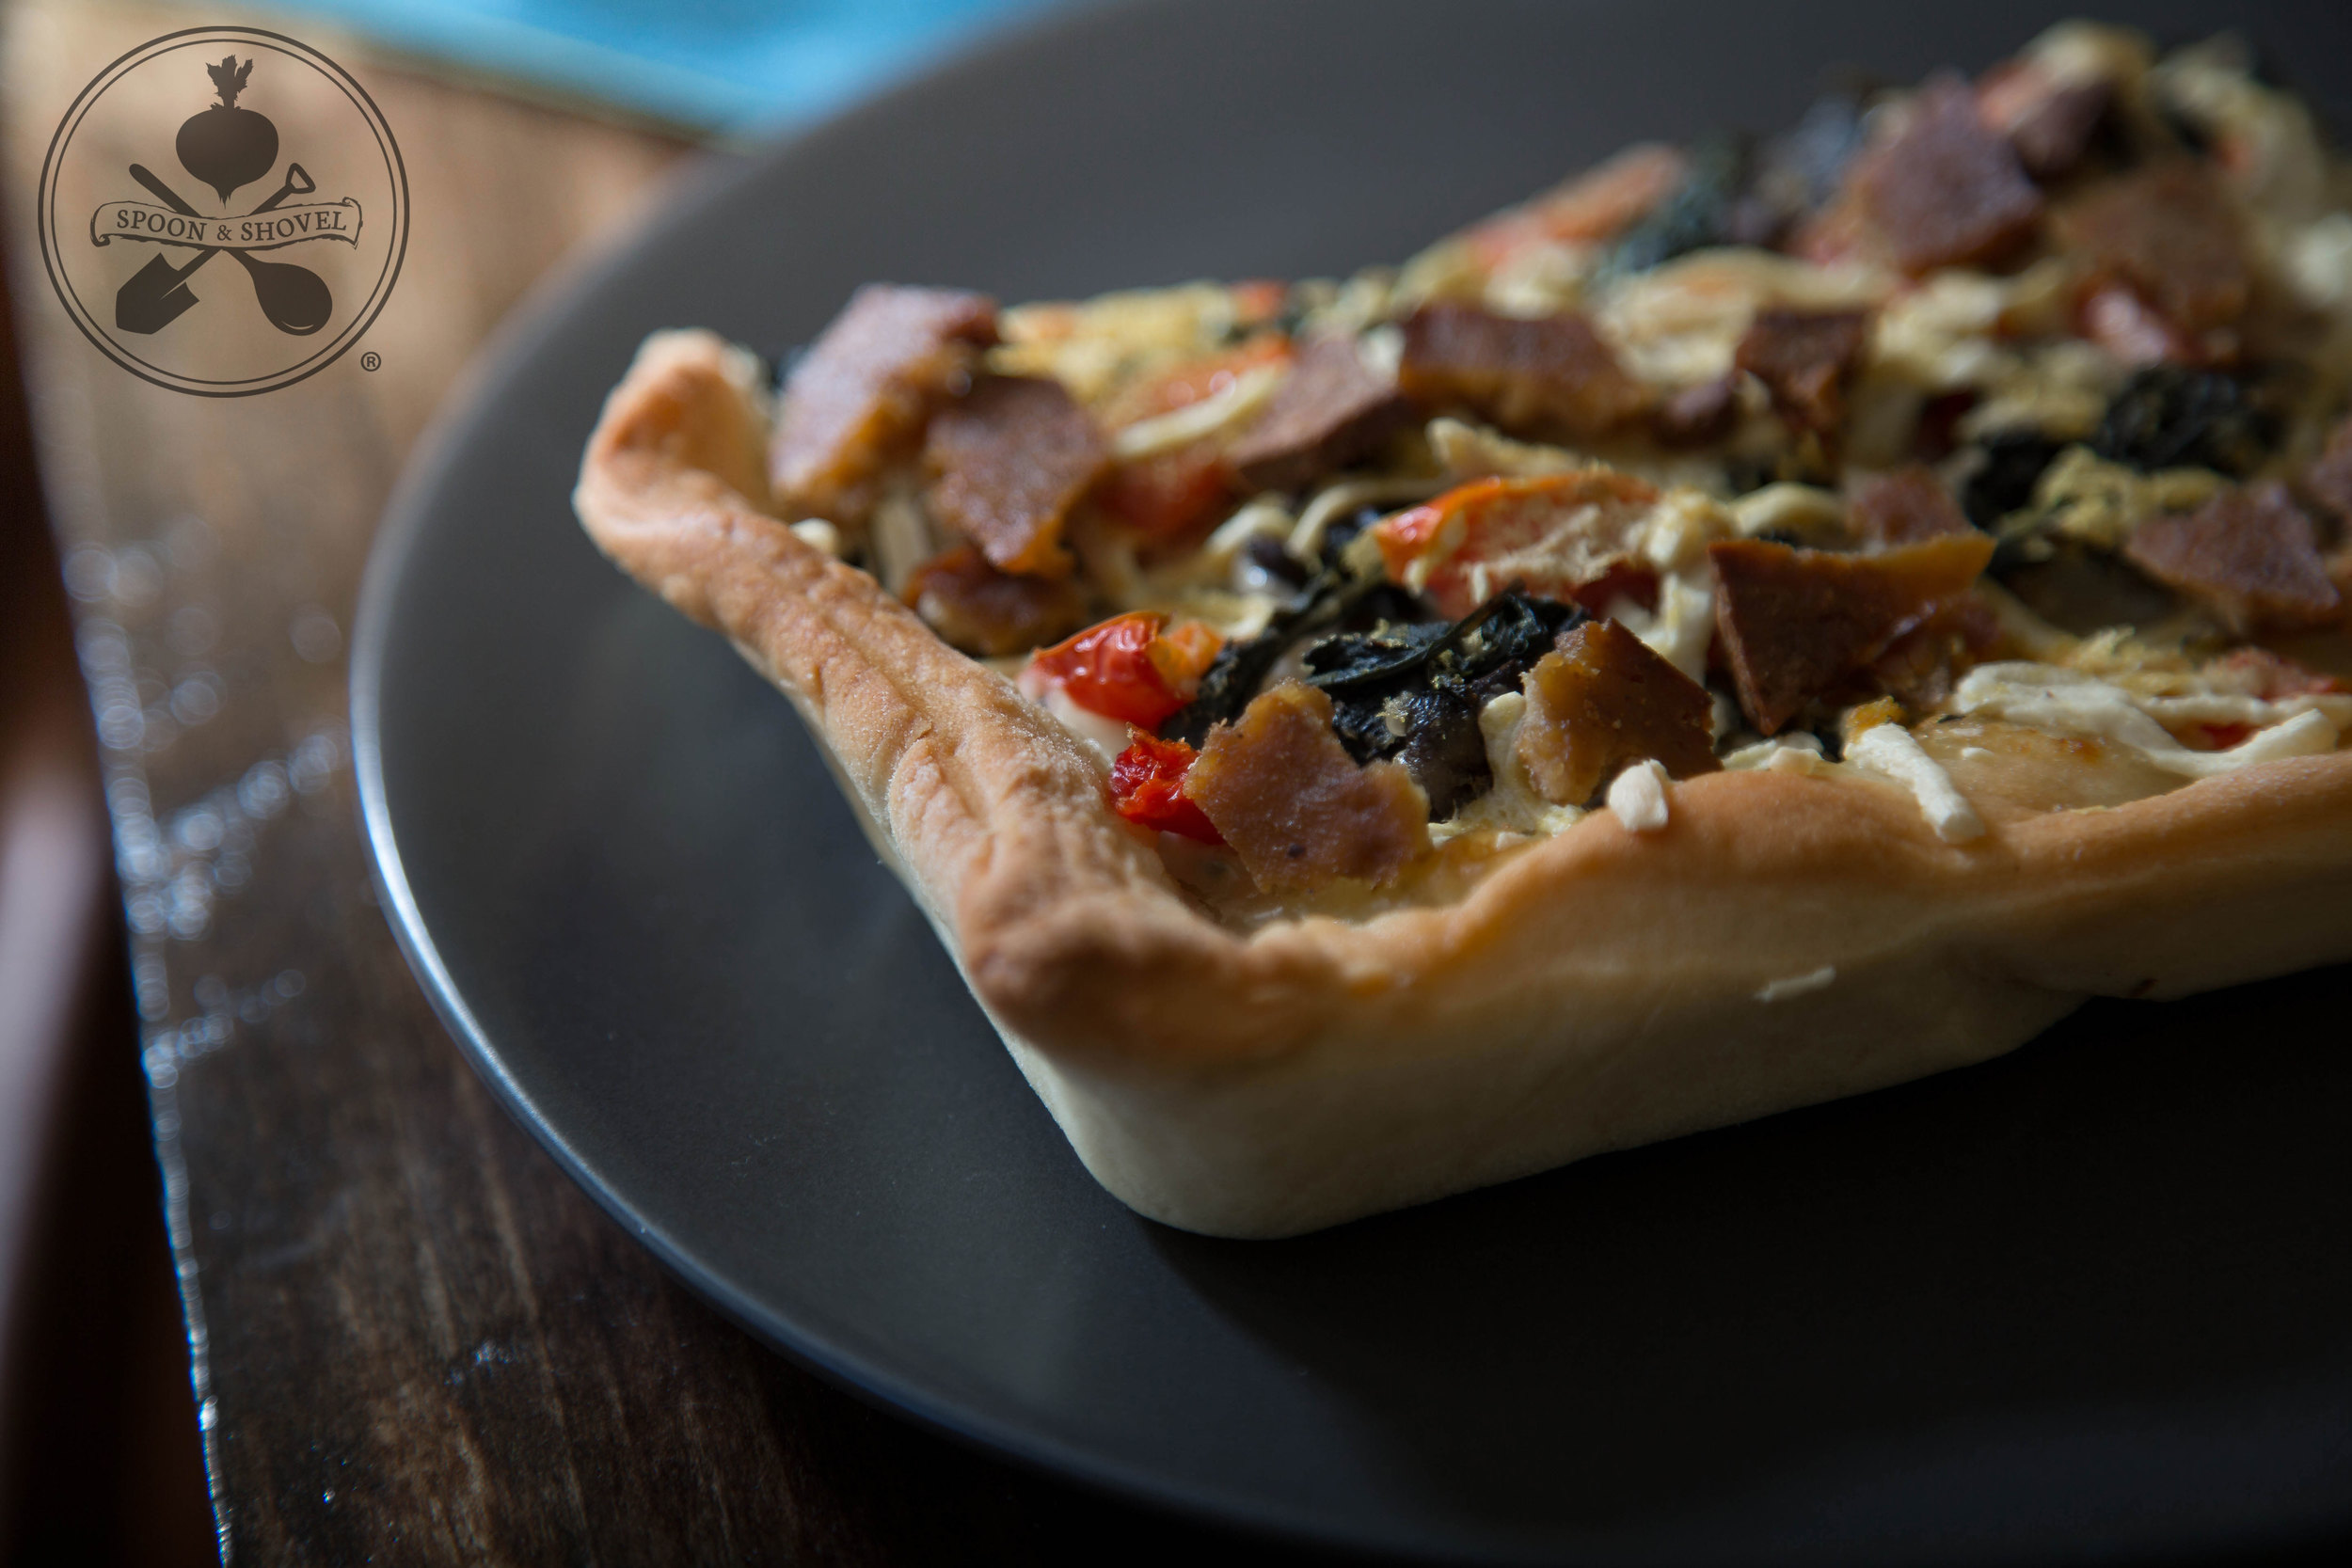 Vegan pizza with white sauce, spinach, veggies and tofu bacon from The Spoon + Shovel